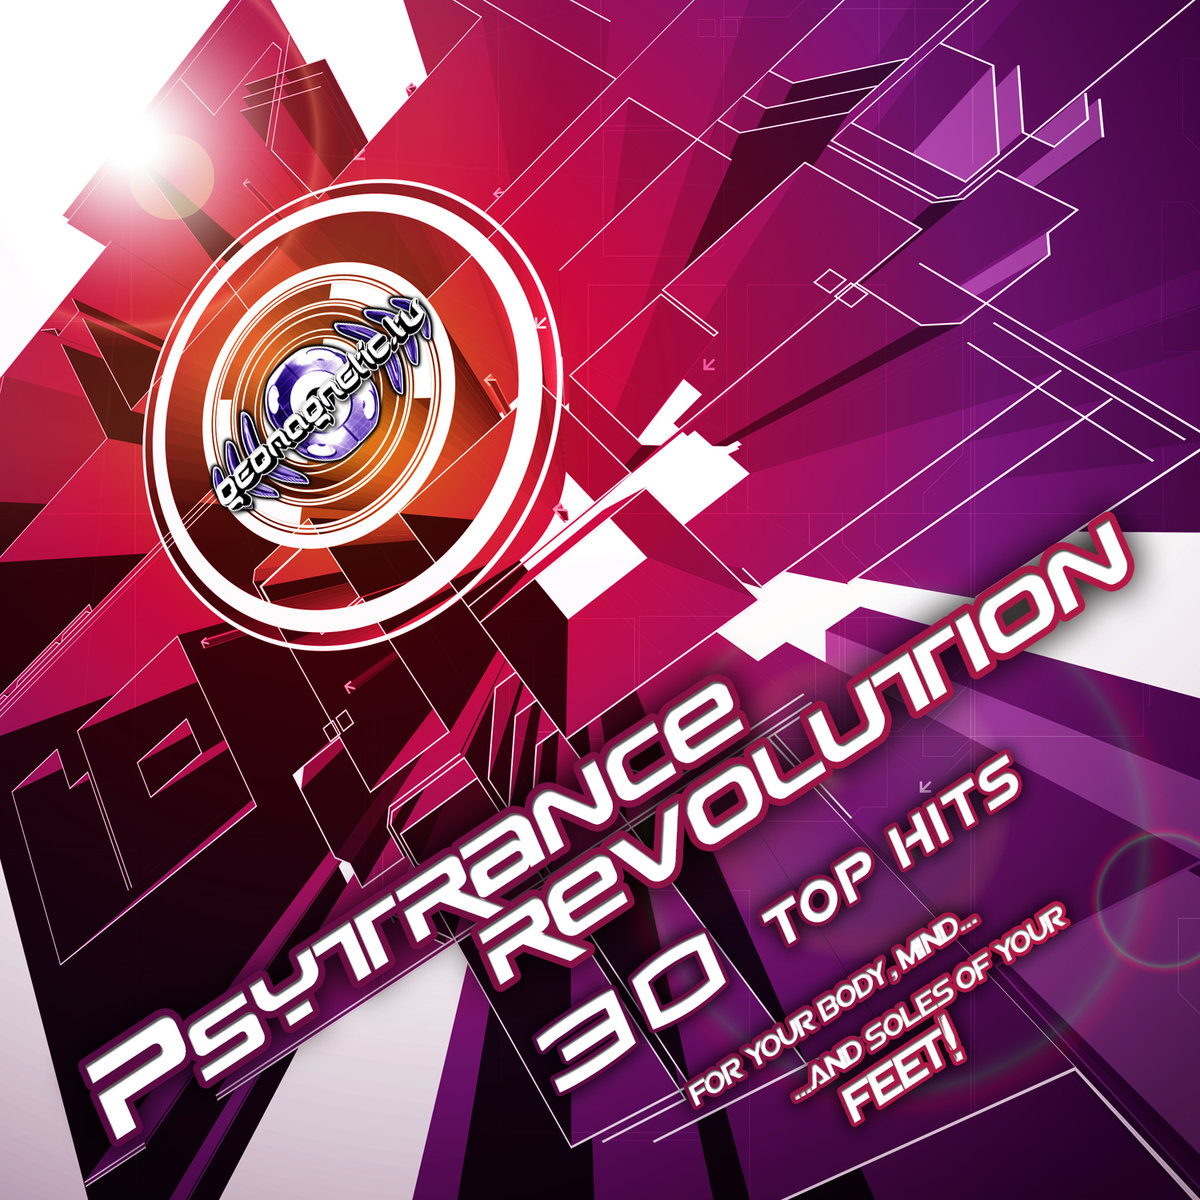 Wavelogix - L.I.S.A. @ 'Various Artists - Psytrance Revolution (30 Top Hits)' album (electronic, goa)